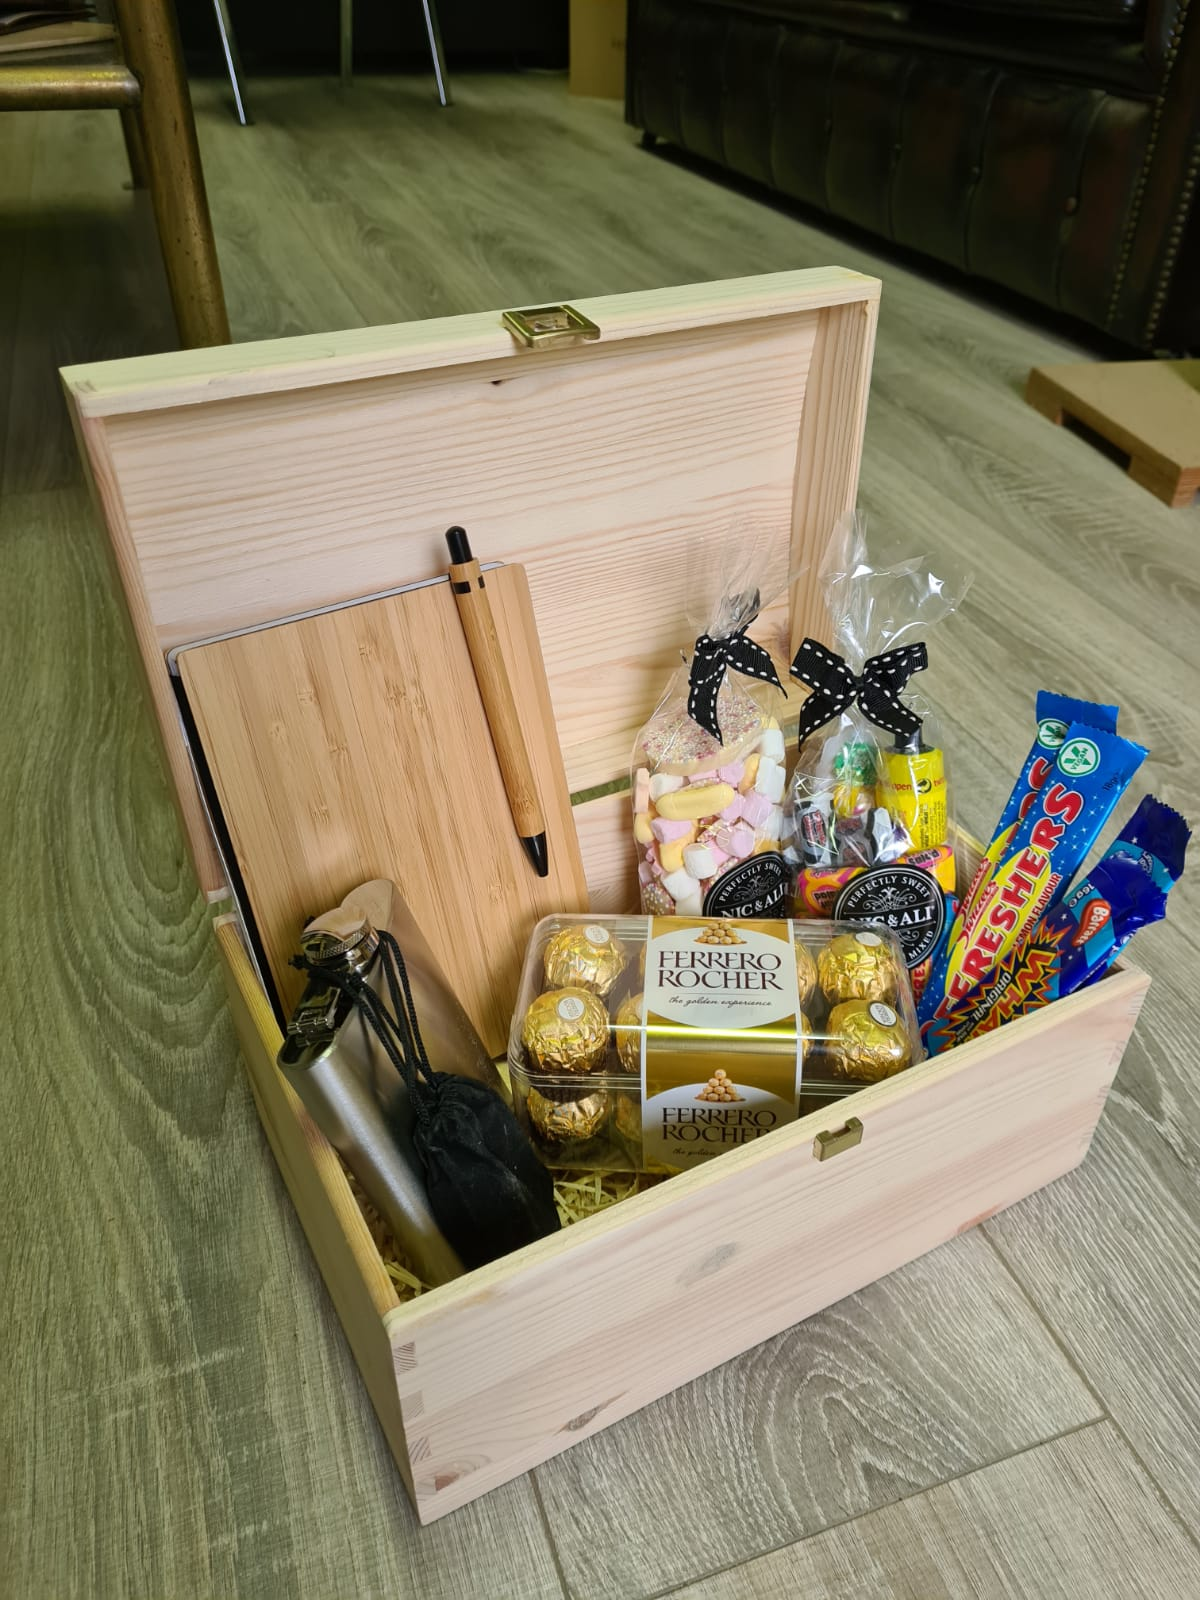 B. Custom Wood Designs Product Boxes Branded Display Boxes Ireland Corporate gifting ideas